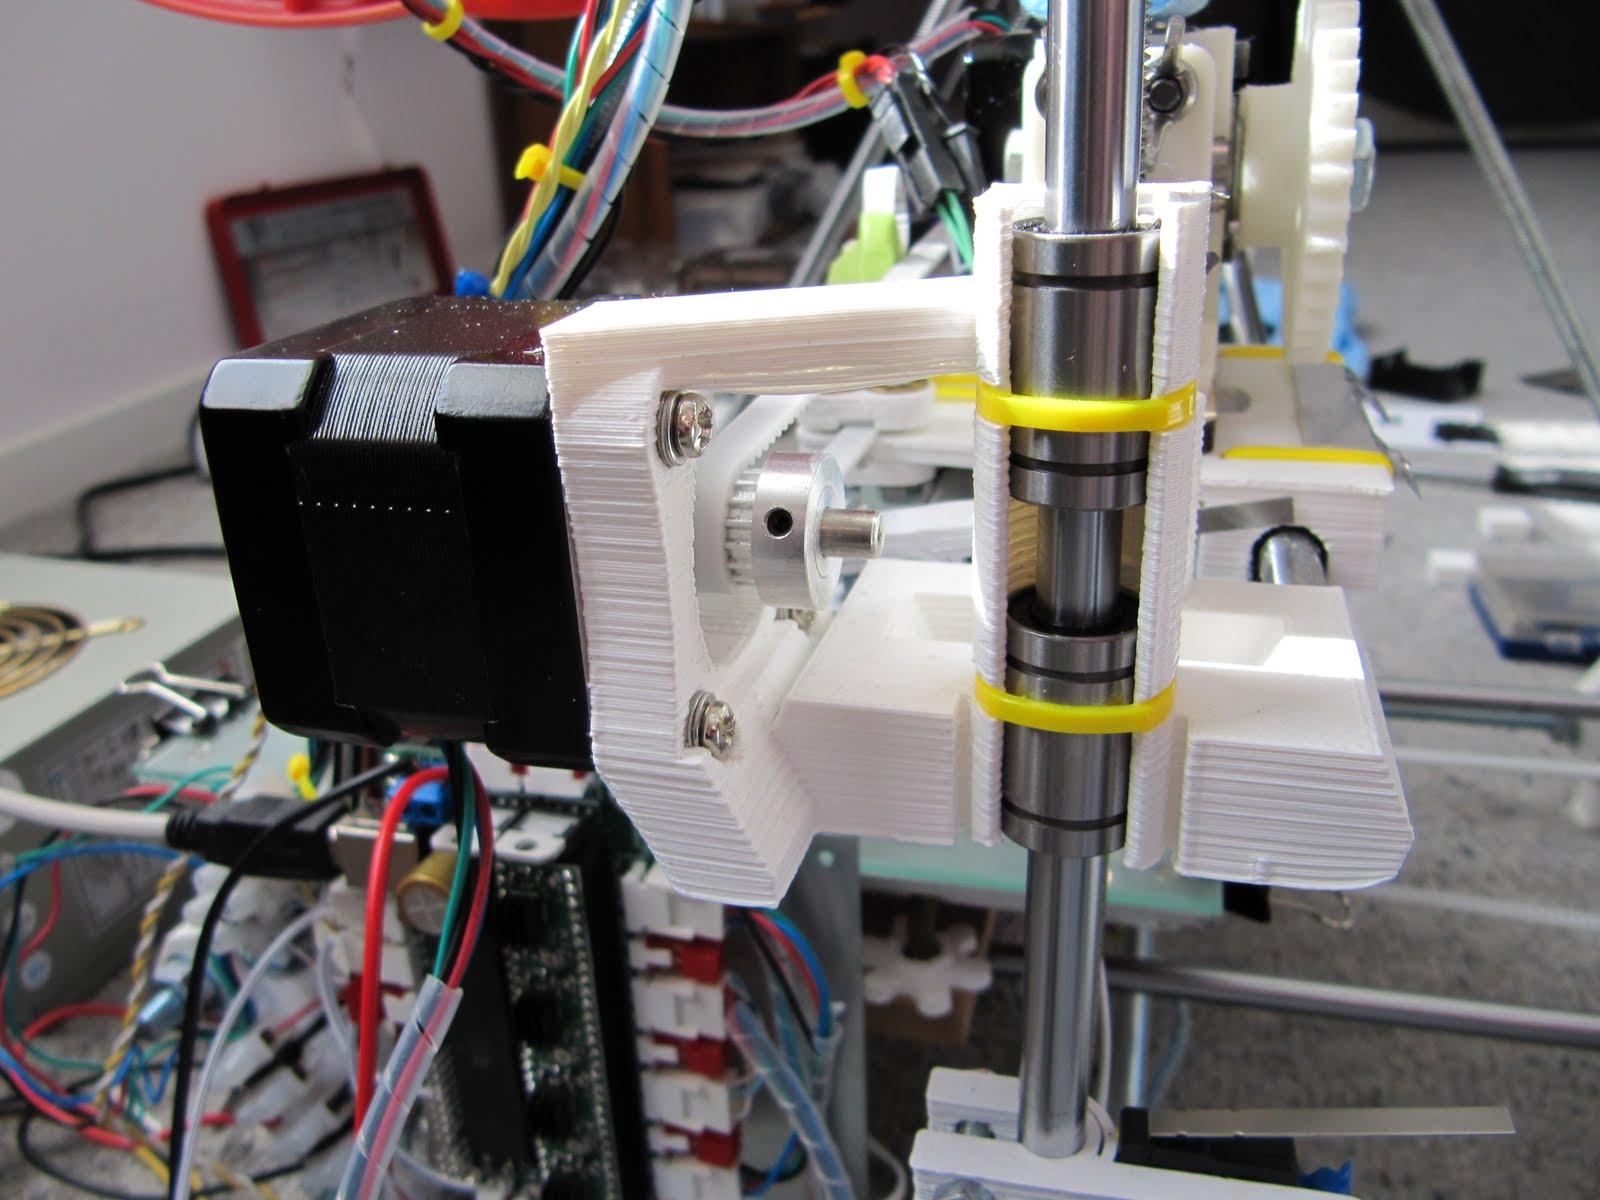 000vmm s3 amazonaws com printrbot files 2011 08Which Brings Me To Wiring Mixshop Doesn39t Give Much More Detail #8